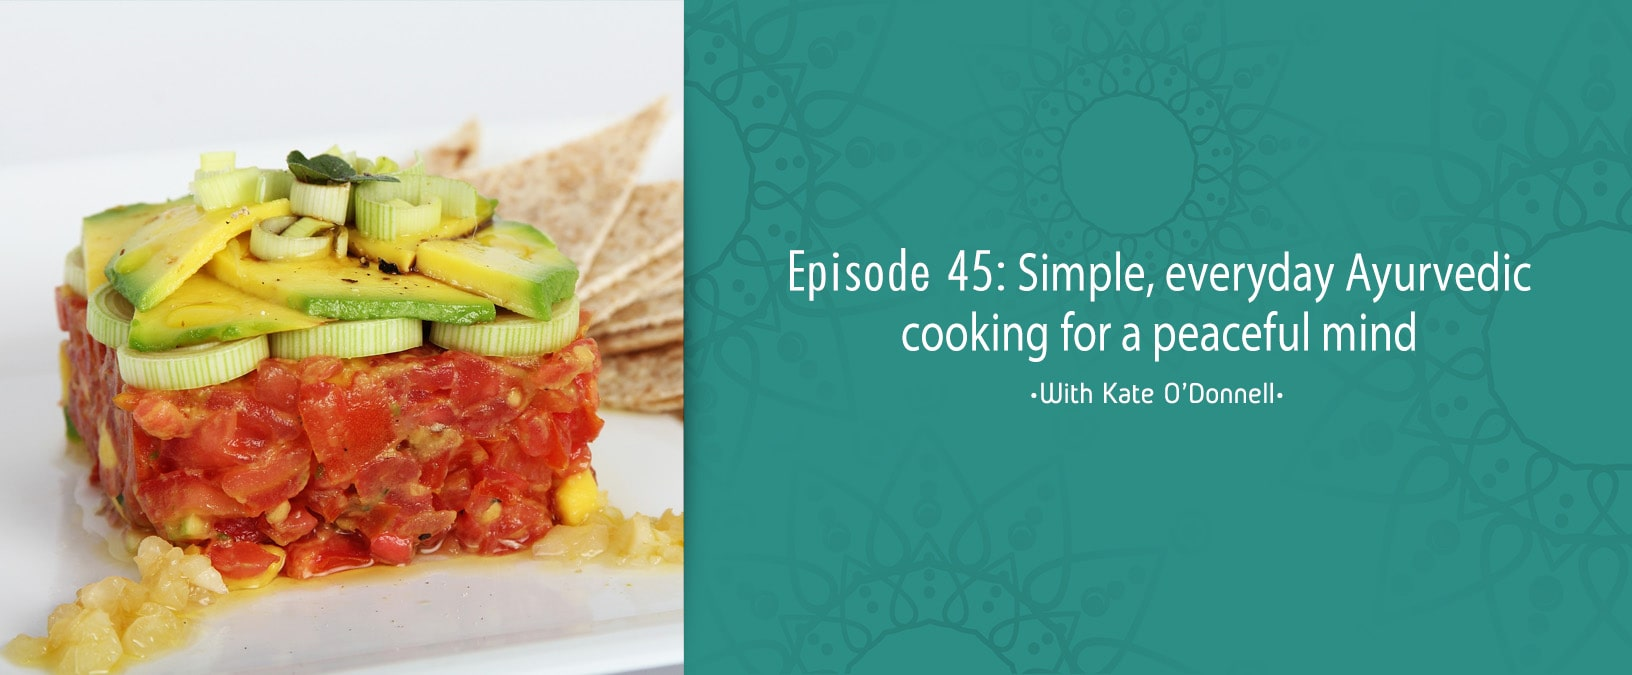 Simple, everyday Ayurvedic cooking for a peaceful mind